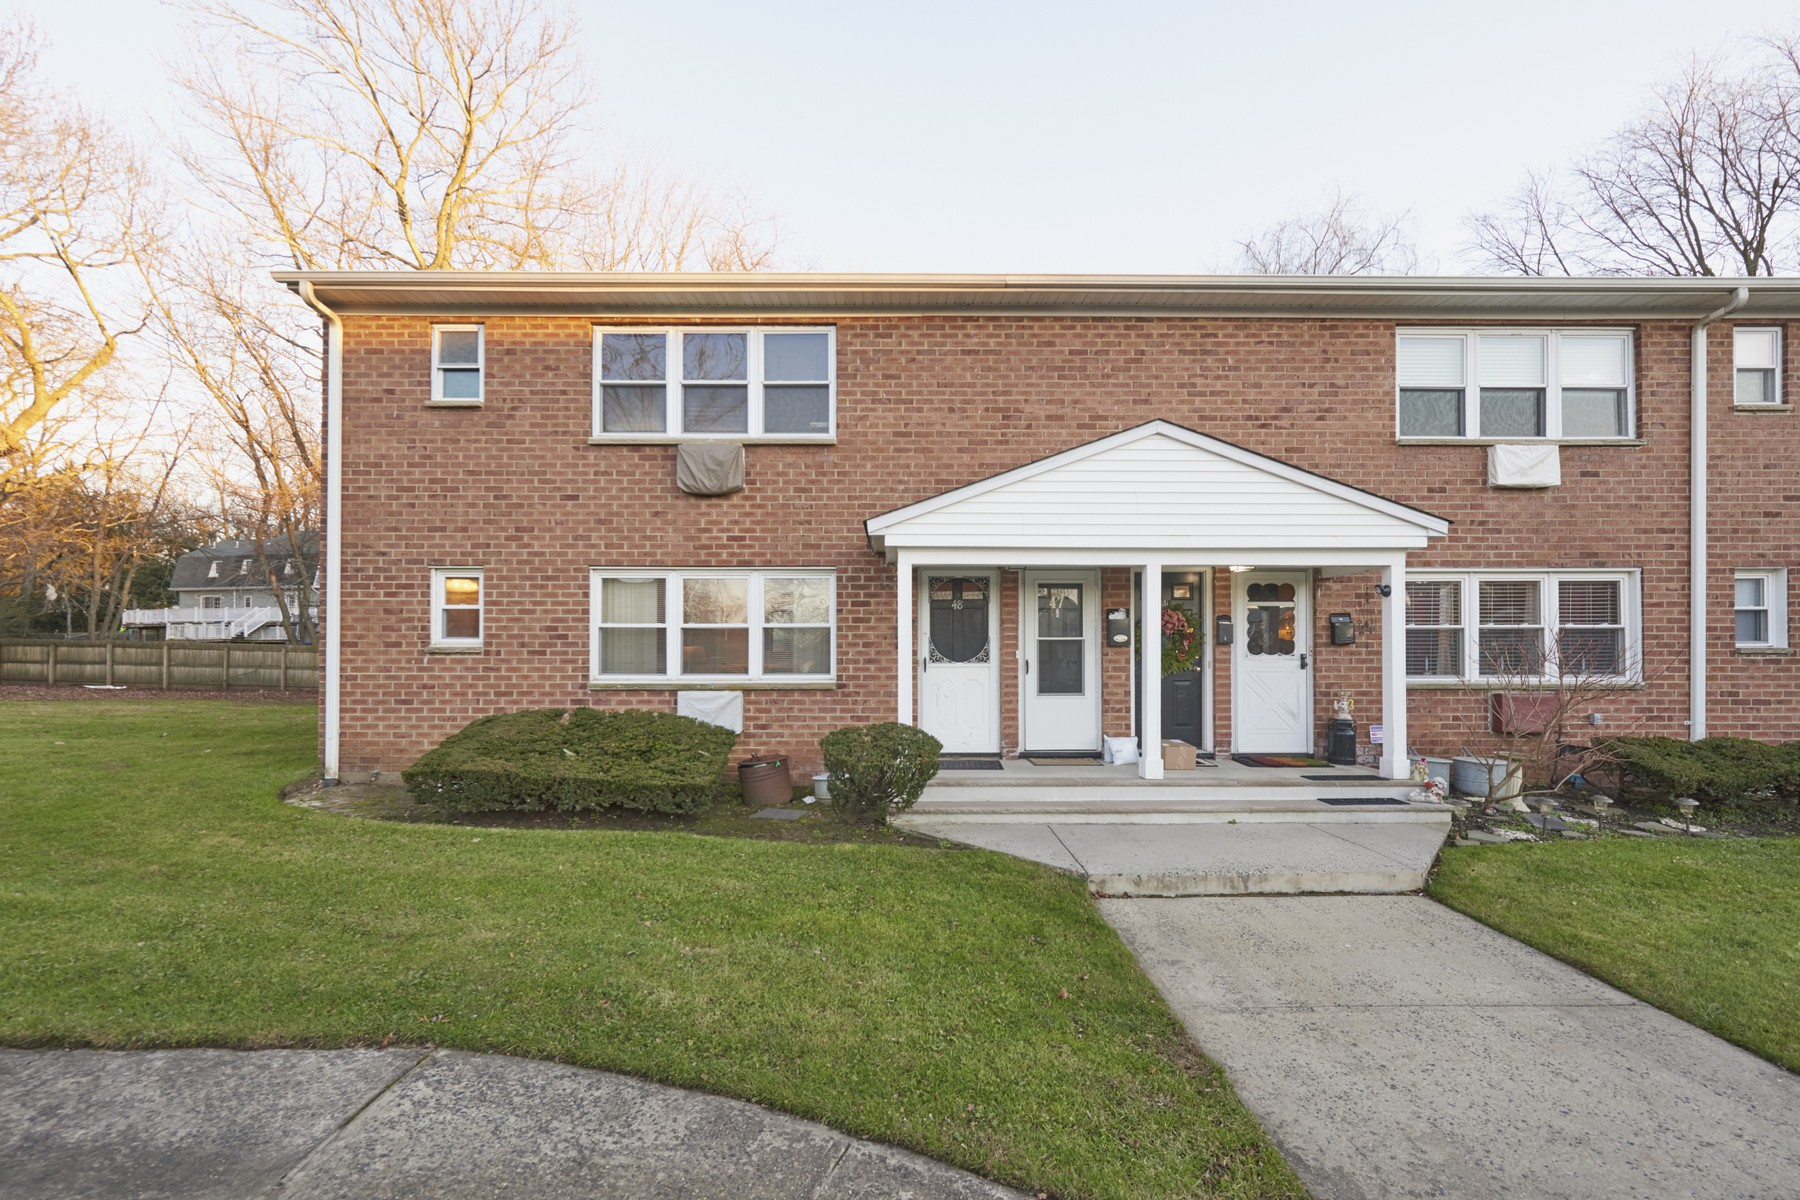 Condominium for Sale at 48 King James Ln, Atlantic Highlands 48 King James Lane, Atlantic Highlands, New Jersey 07716 United States